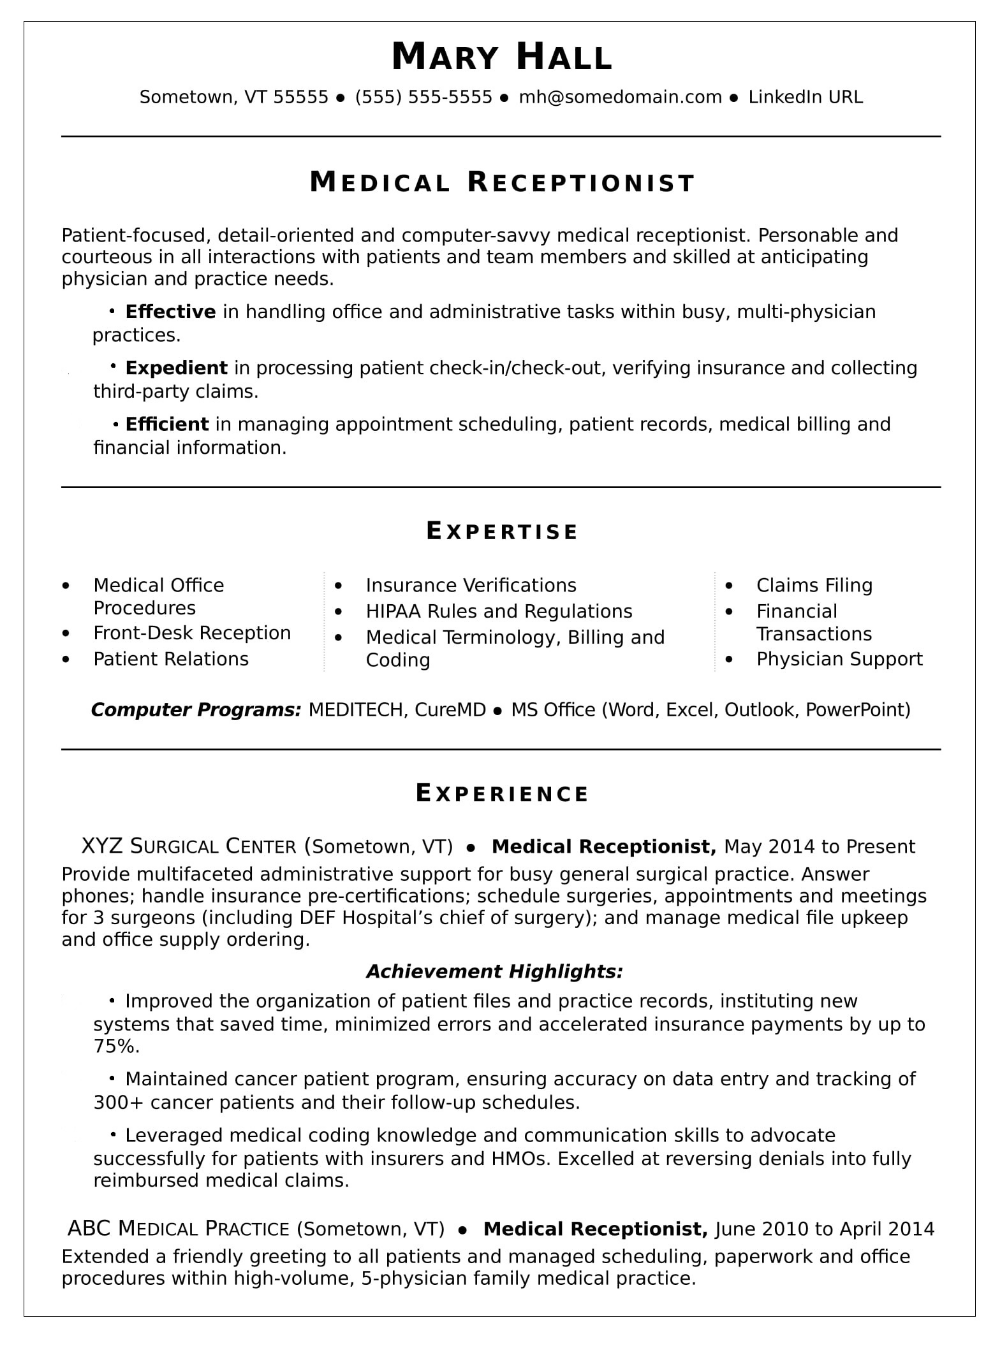 Resume For Receptionist Tips Examples Resumewritinglab Receptionist Jobs Dental Receptionist Medical Receptionist